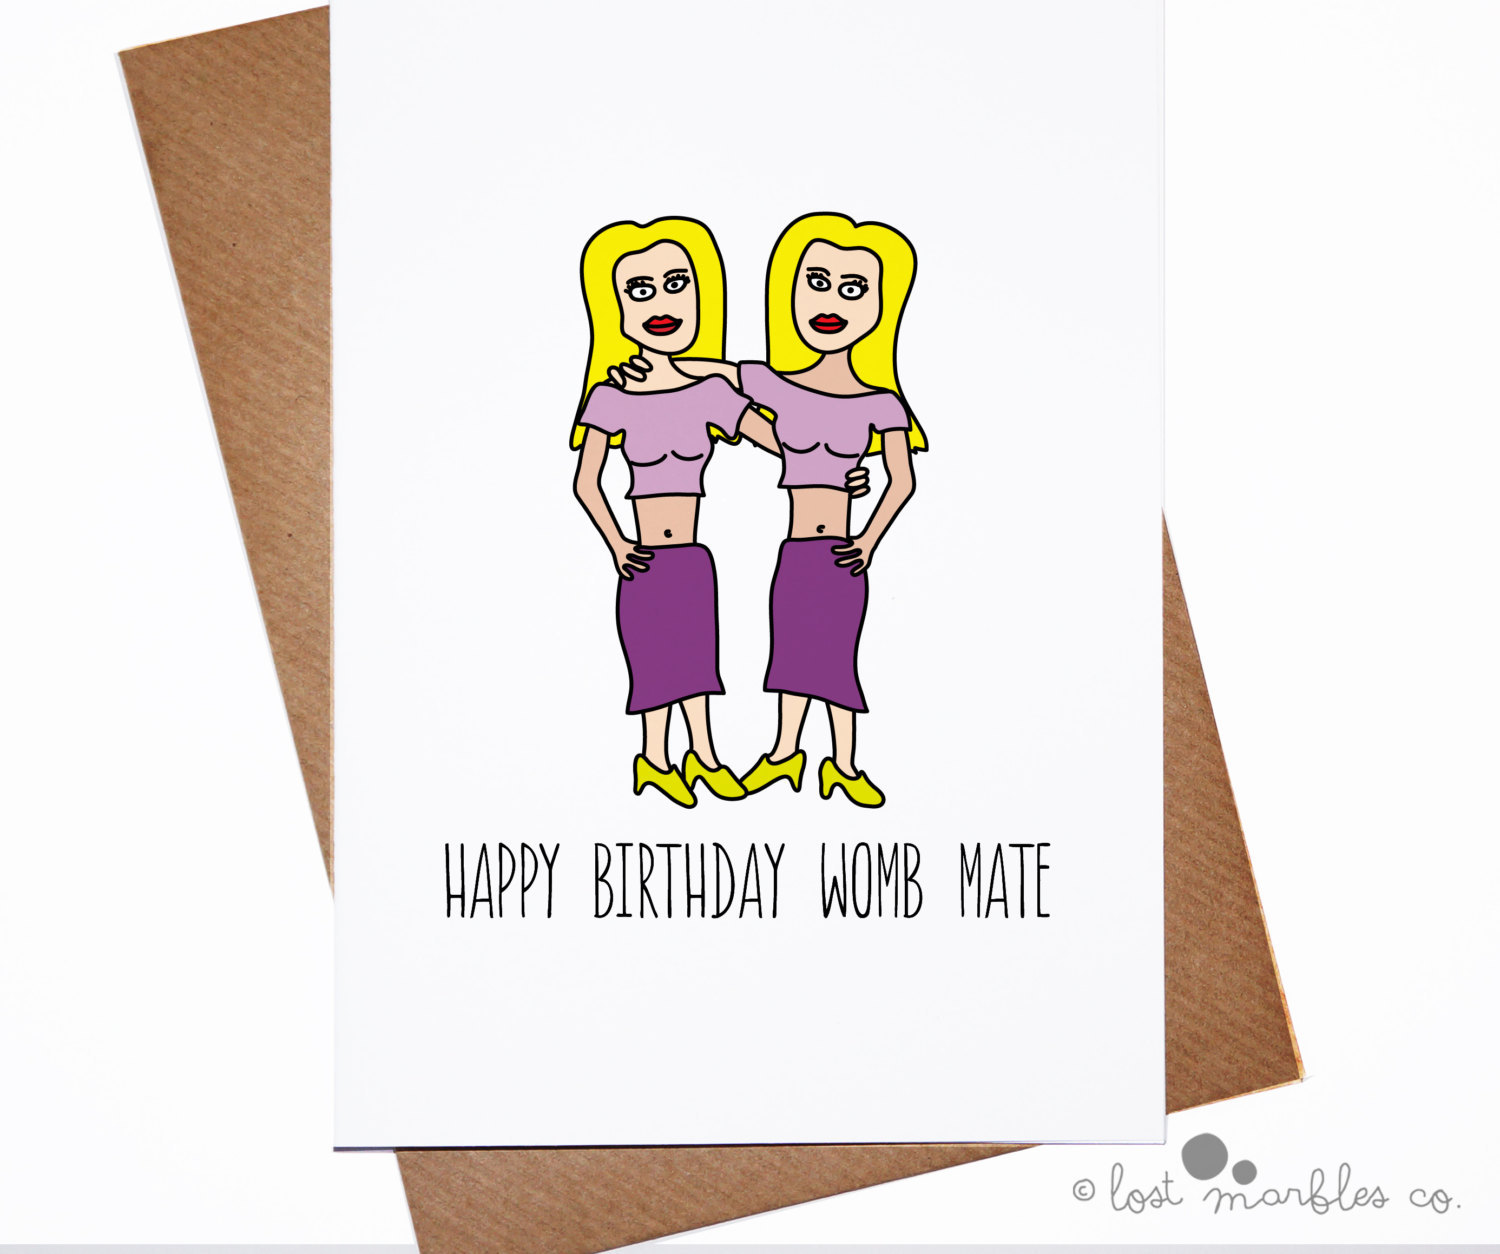 cute birthday card drawings ; cute-birthday-drawings-birthday-card-popular-items-cute-birthday-cards-cute-birthday